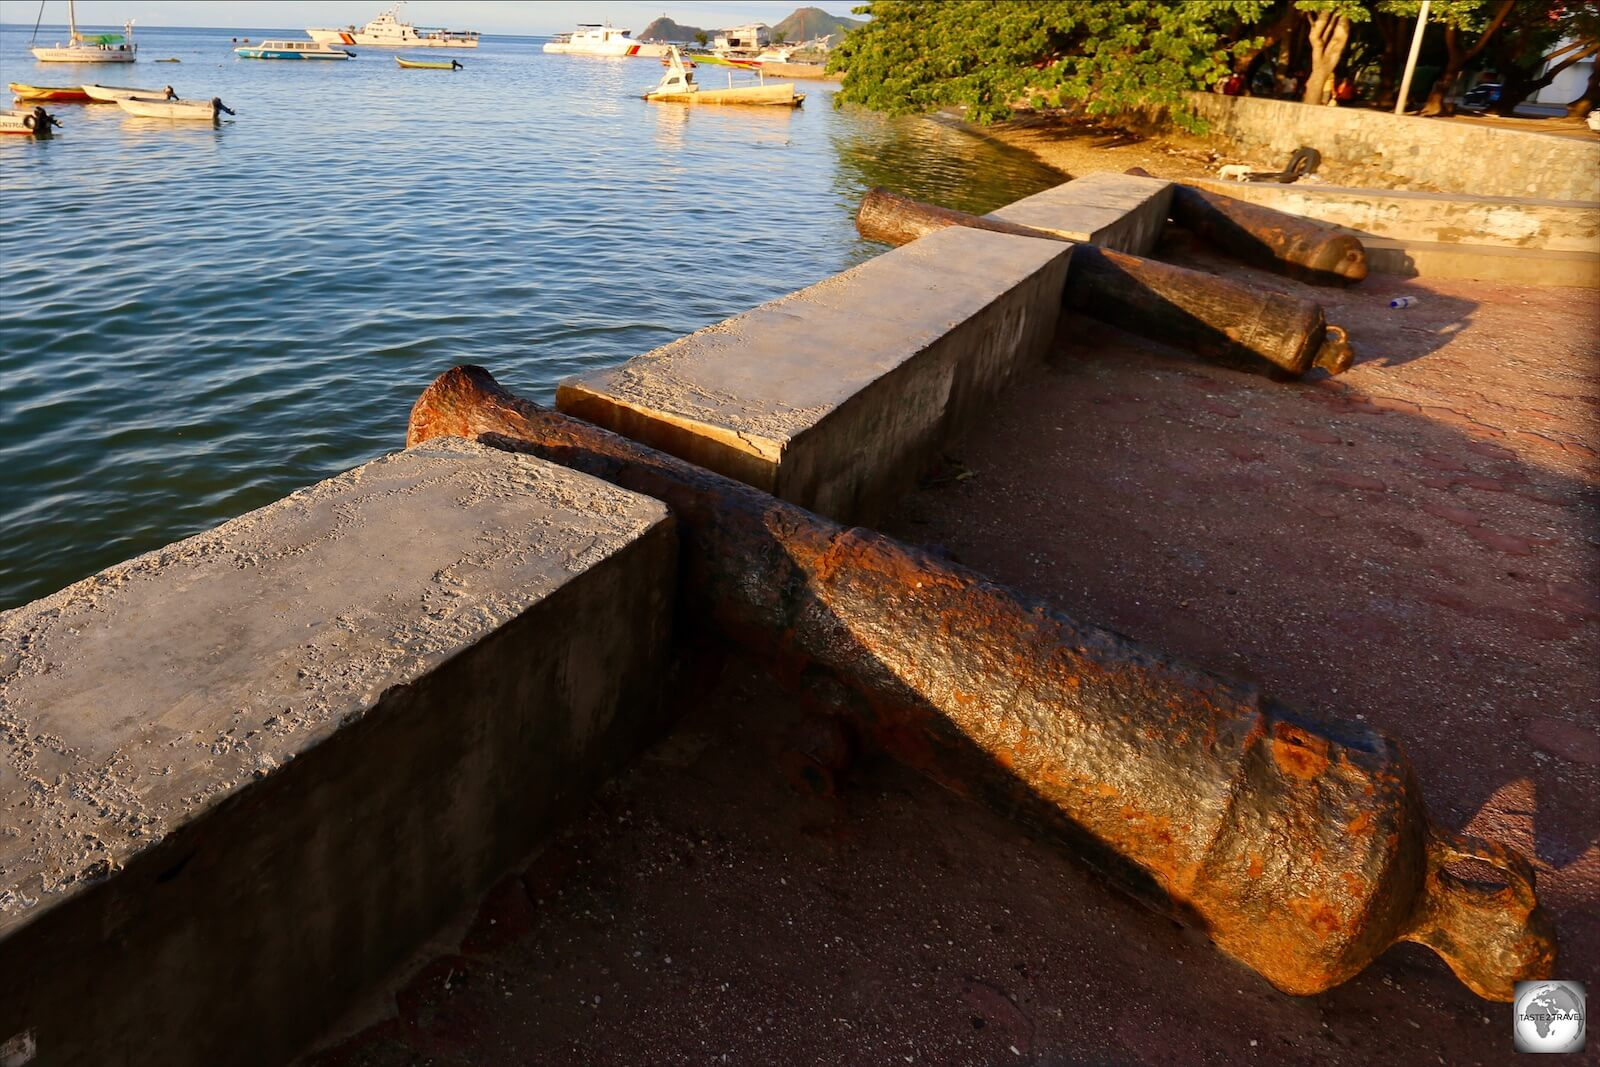 Portuguese cannons line the waterfront in Dili.